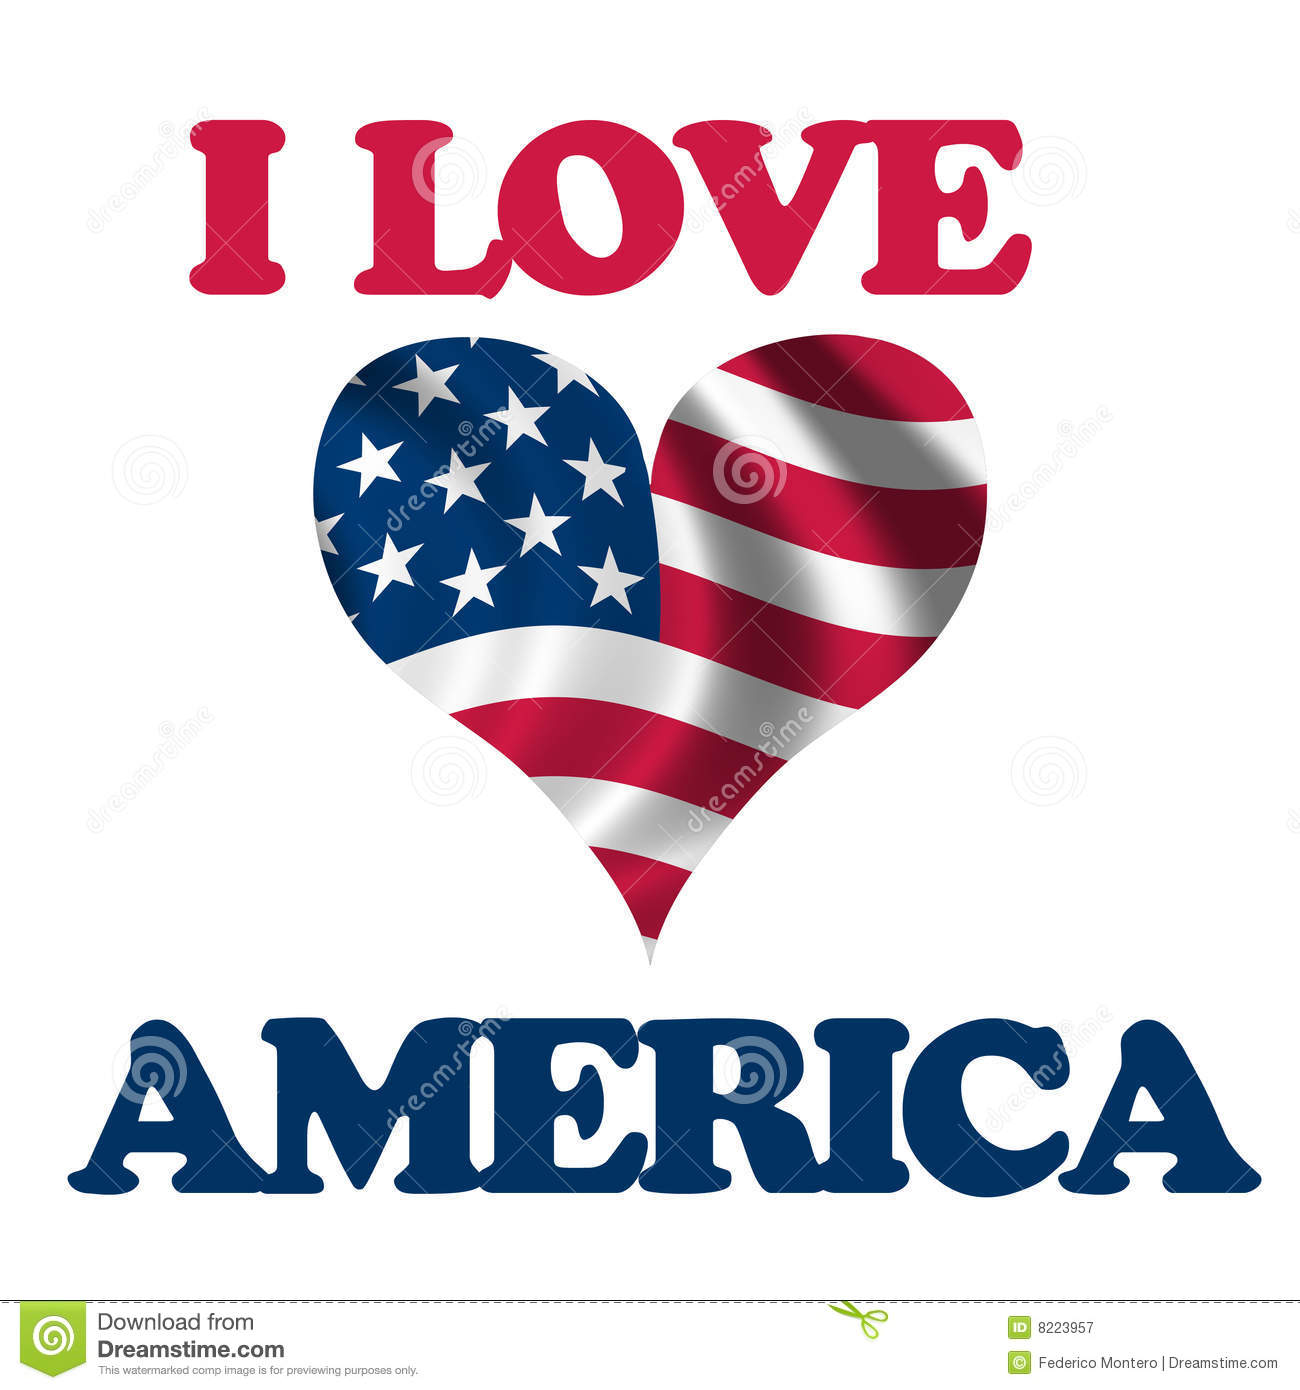 why i love america essay john wayne song why i love america essay